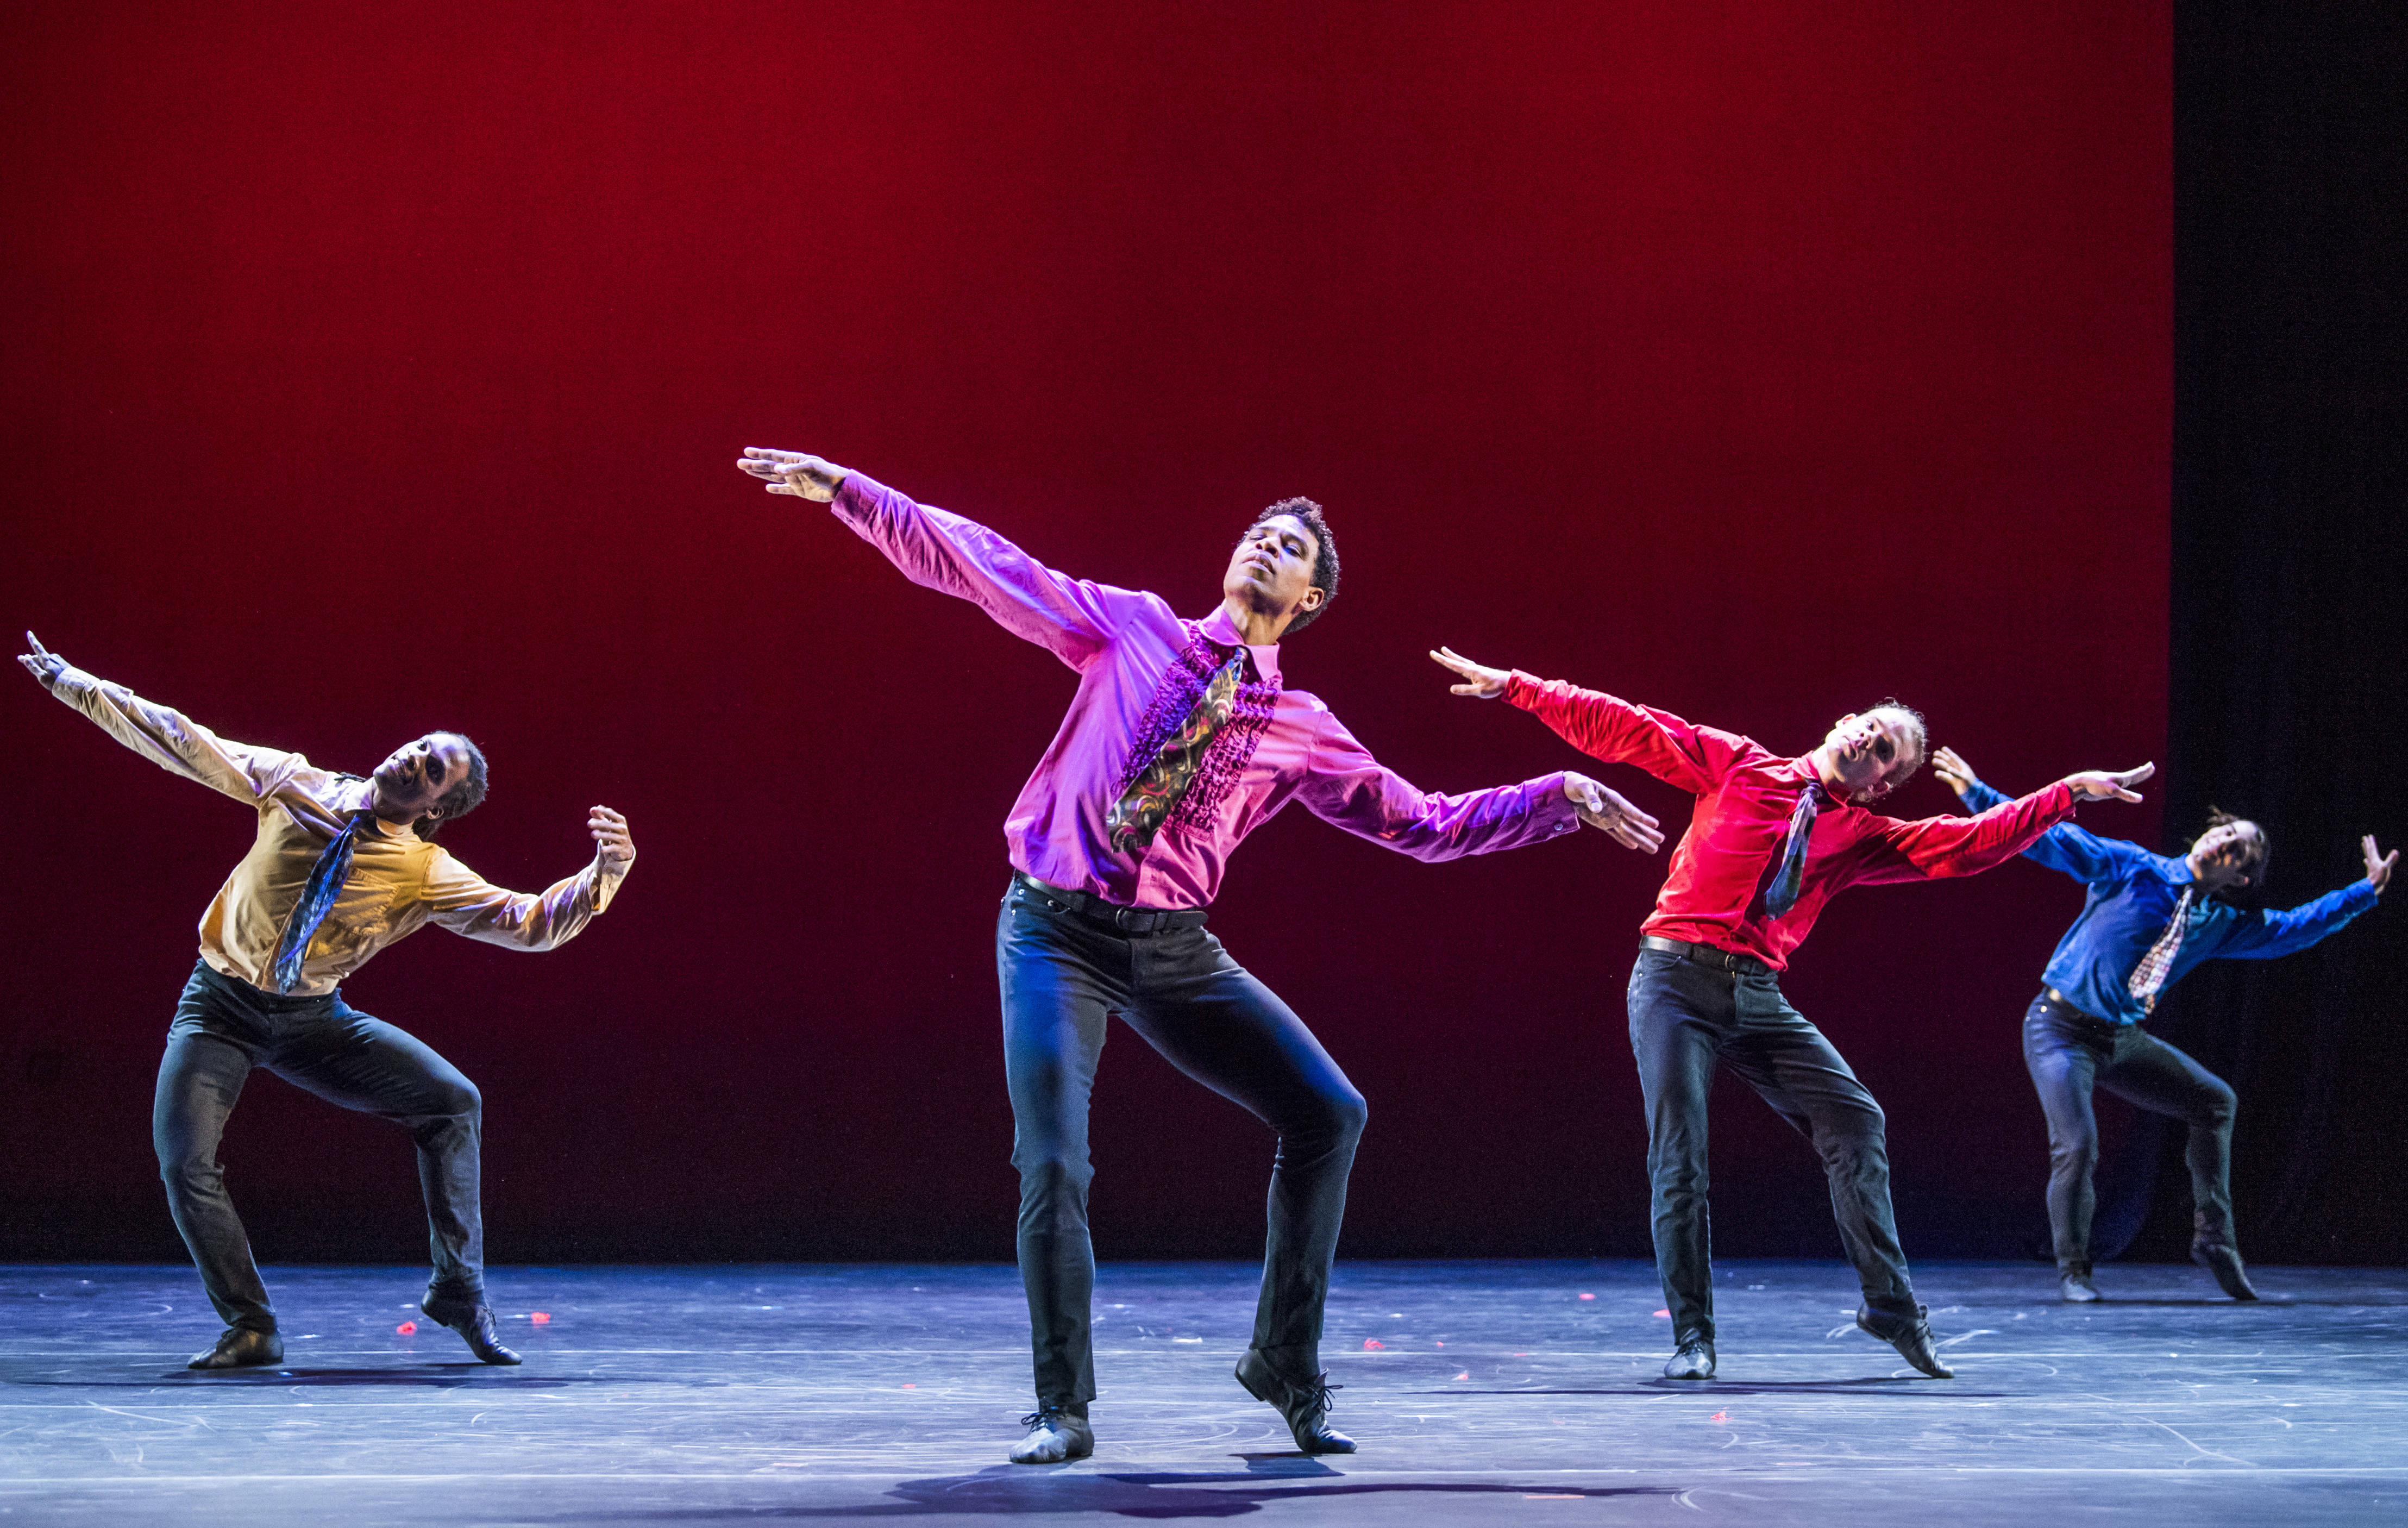 Carlos Acosta and Acosta Danza  in Rooster by Christopher Bruce part of Carlos Acosta-A Celebration-Royal Albert Hall.